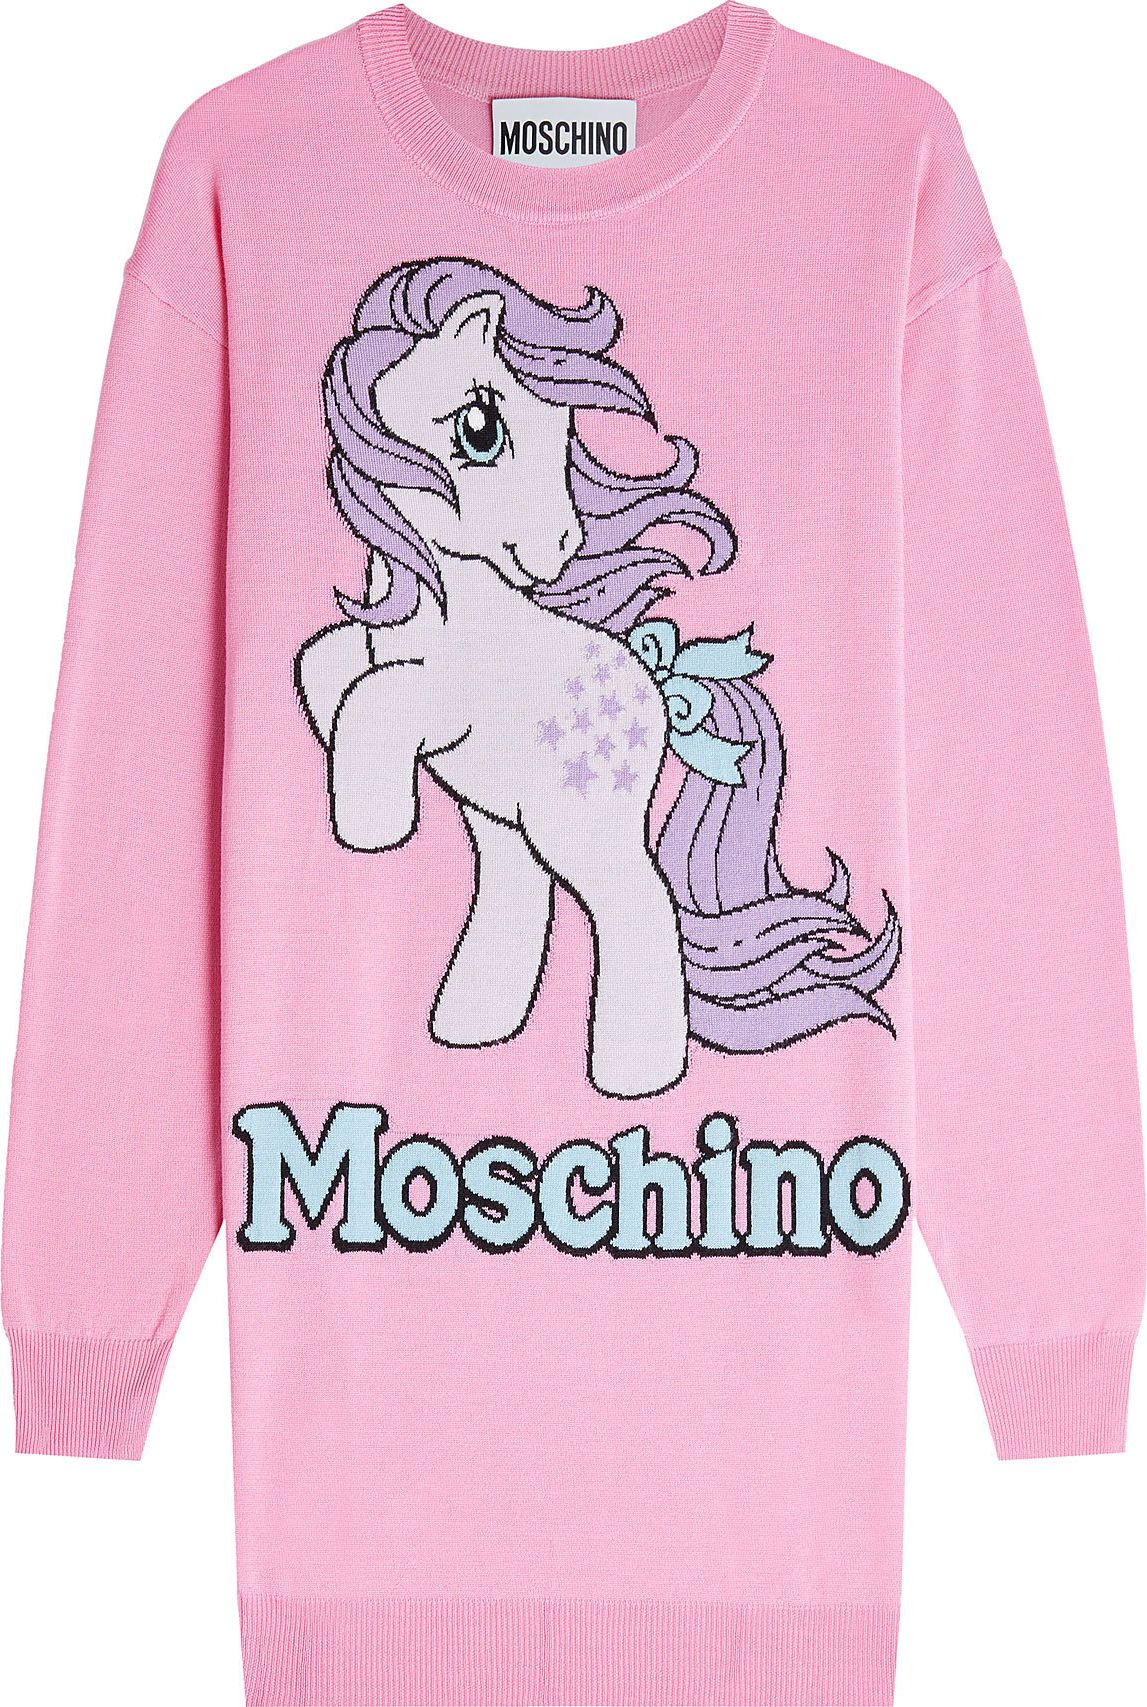 Moschino - Printed Wool Pullover